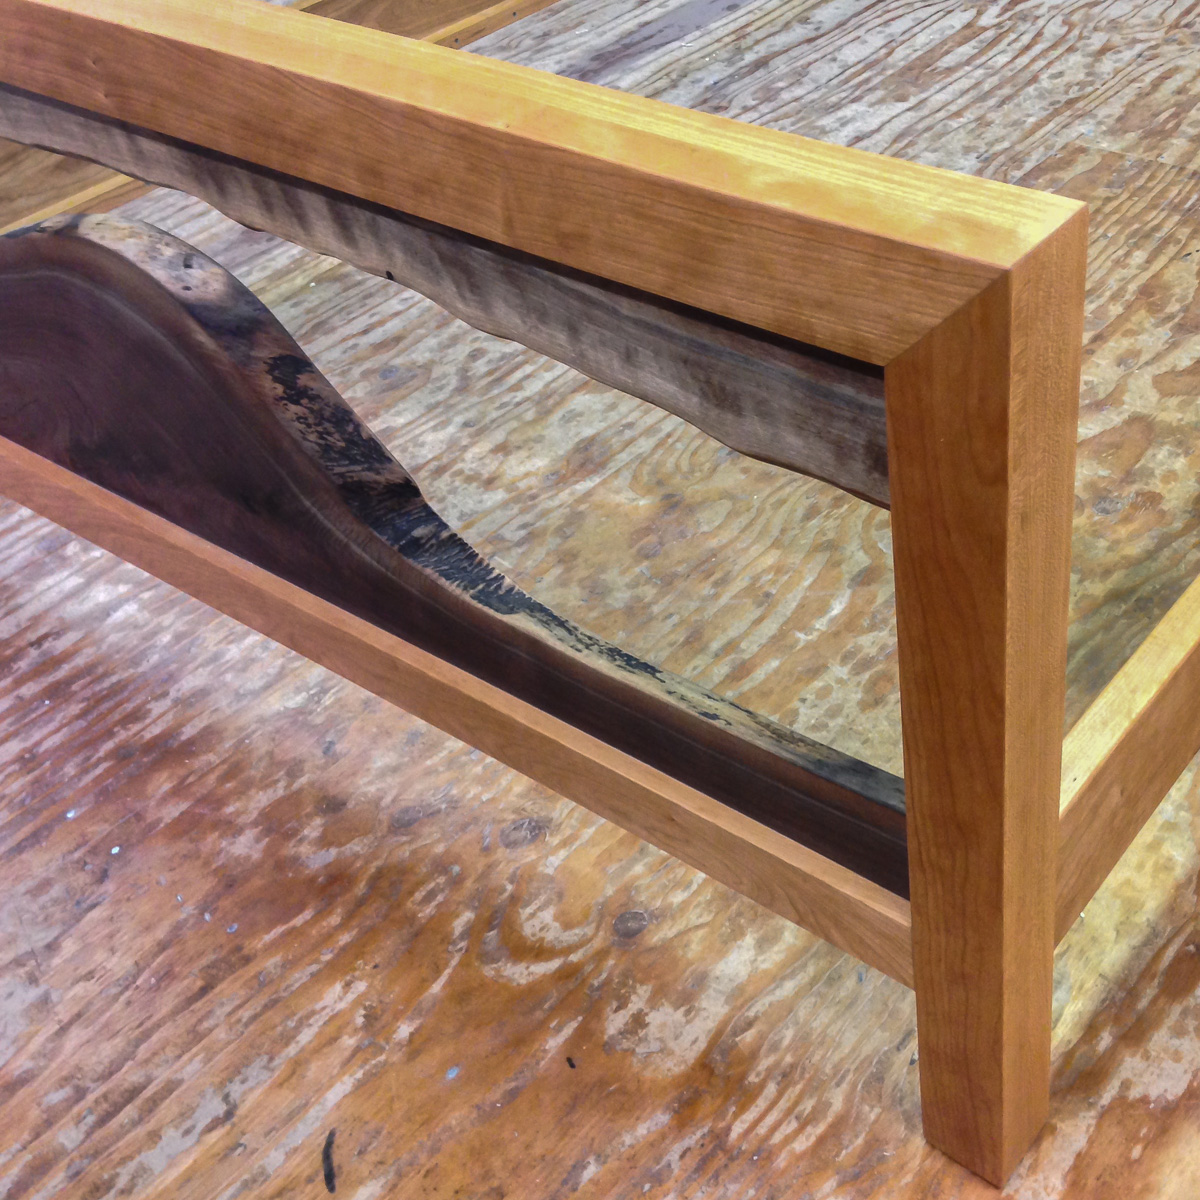 Detail of a footboard with live edge walnut elements in a cherry mitered frame